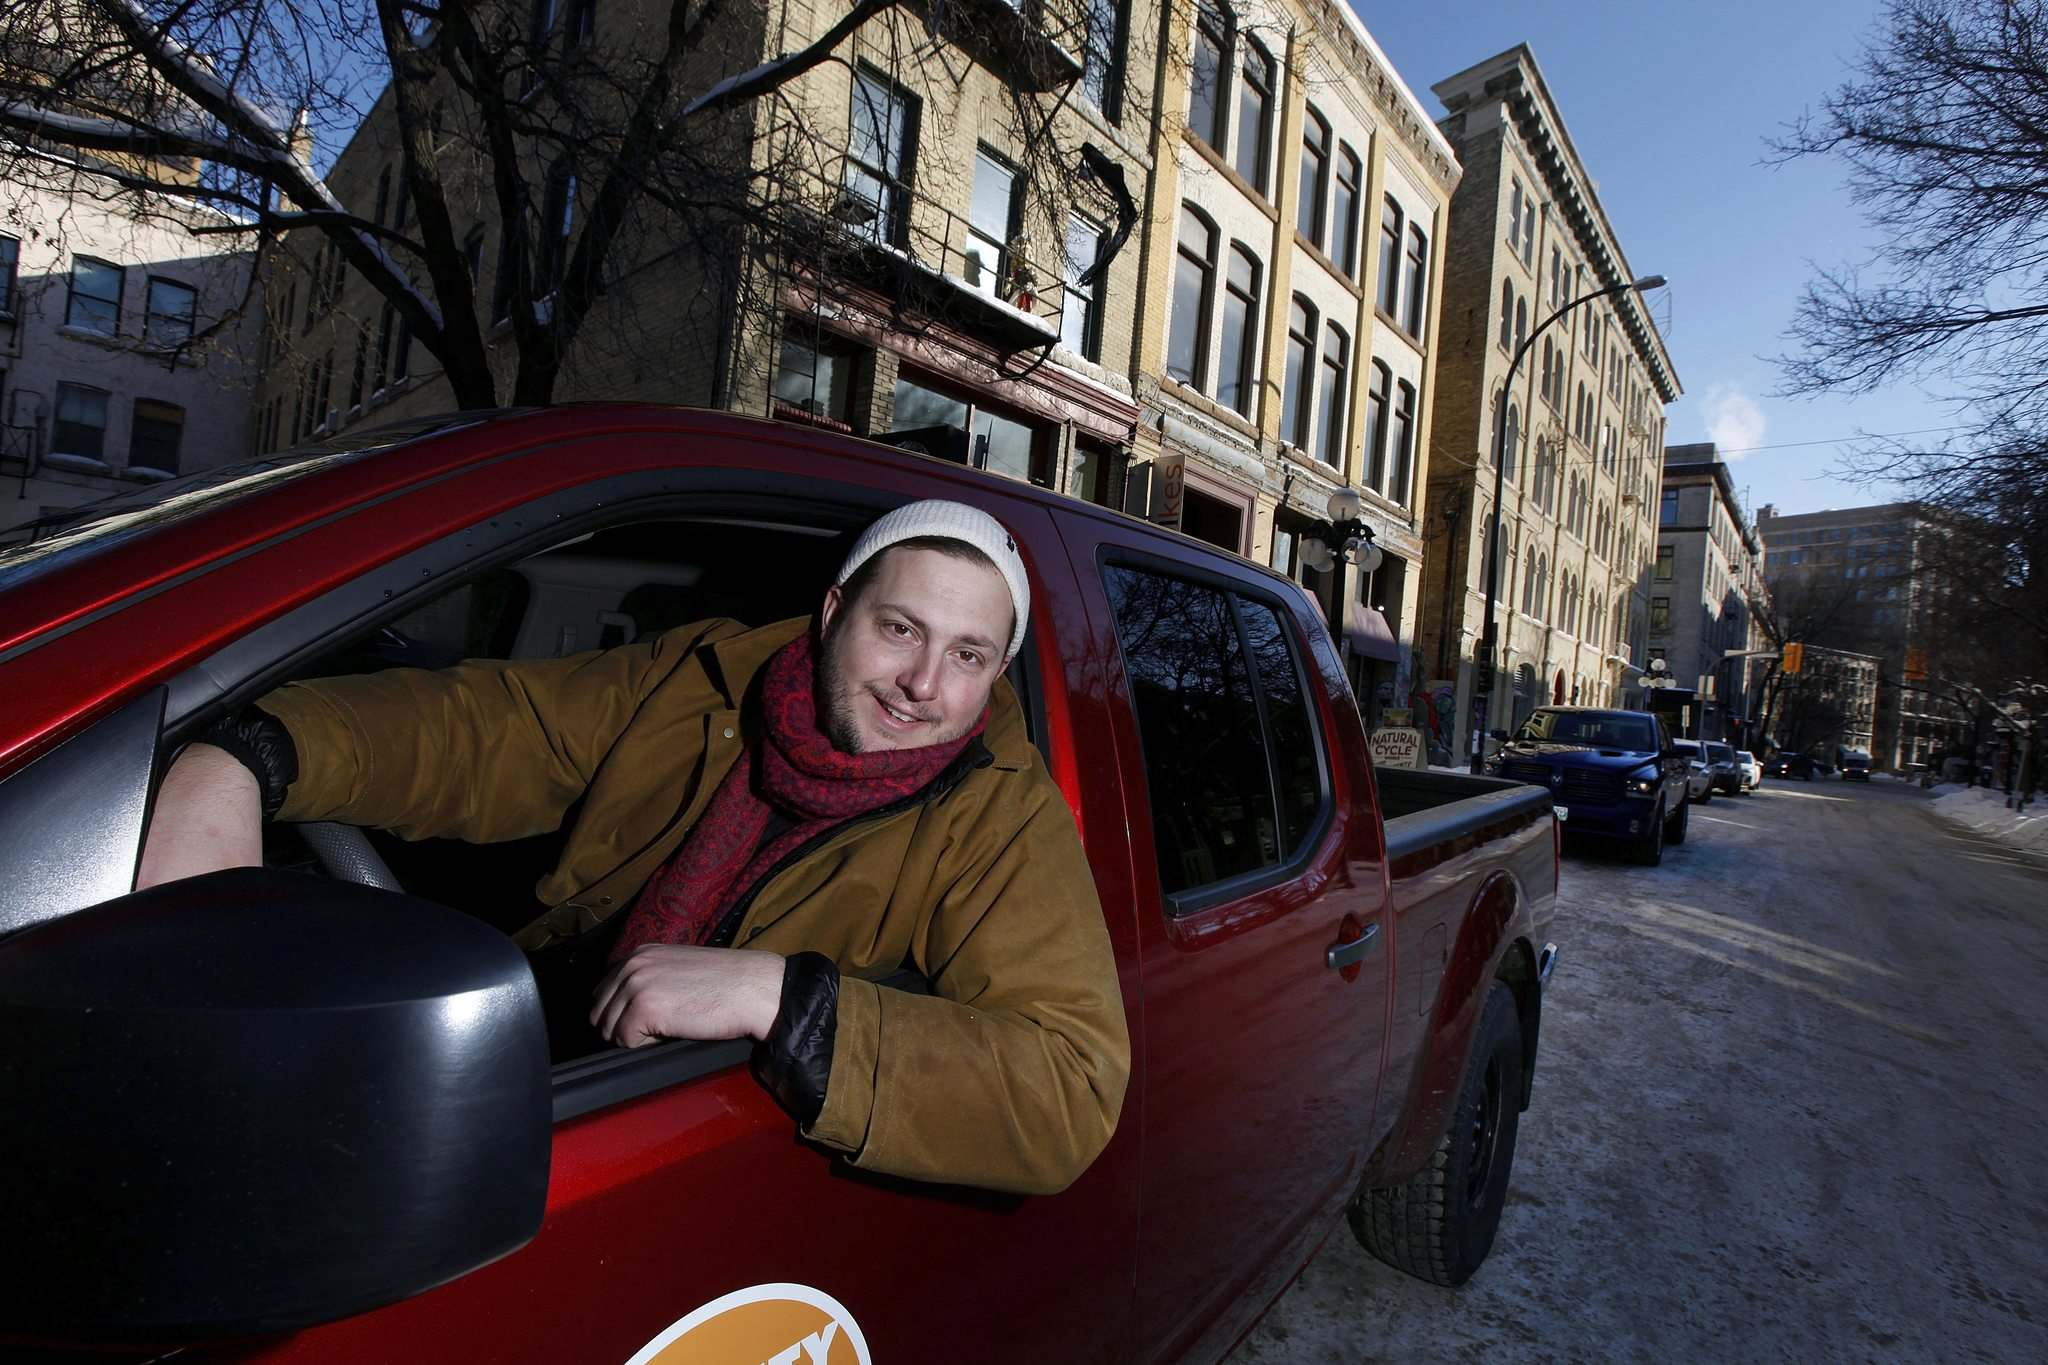 Peg City Co-op operations manager Philip Mikulec says two reasons people join the car-sharing co-op is for environmental and financial reasons. (Phil Hossack / Winnipeg Free Press)